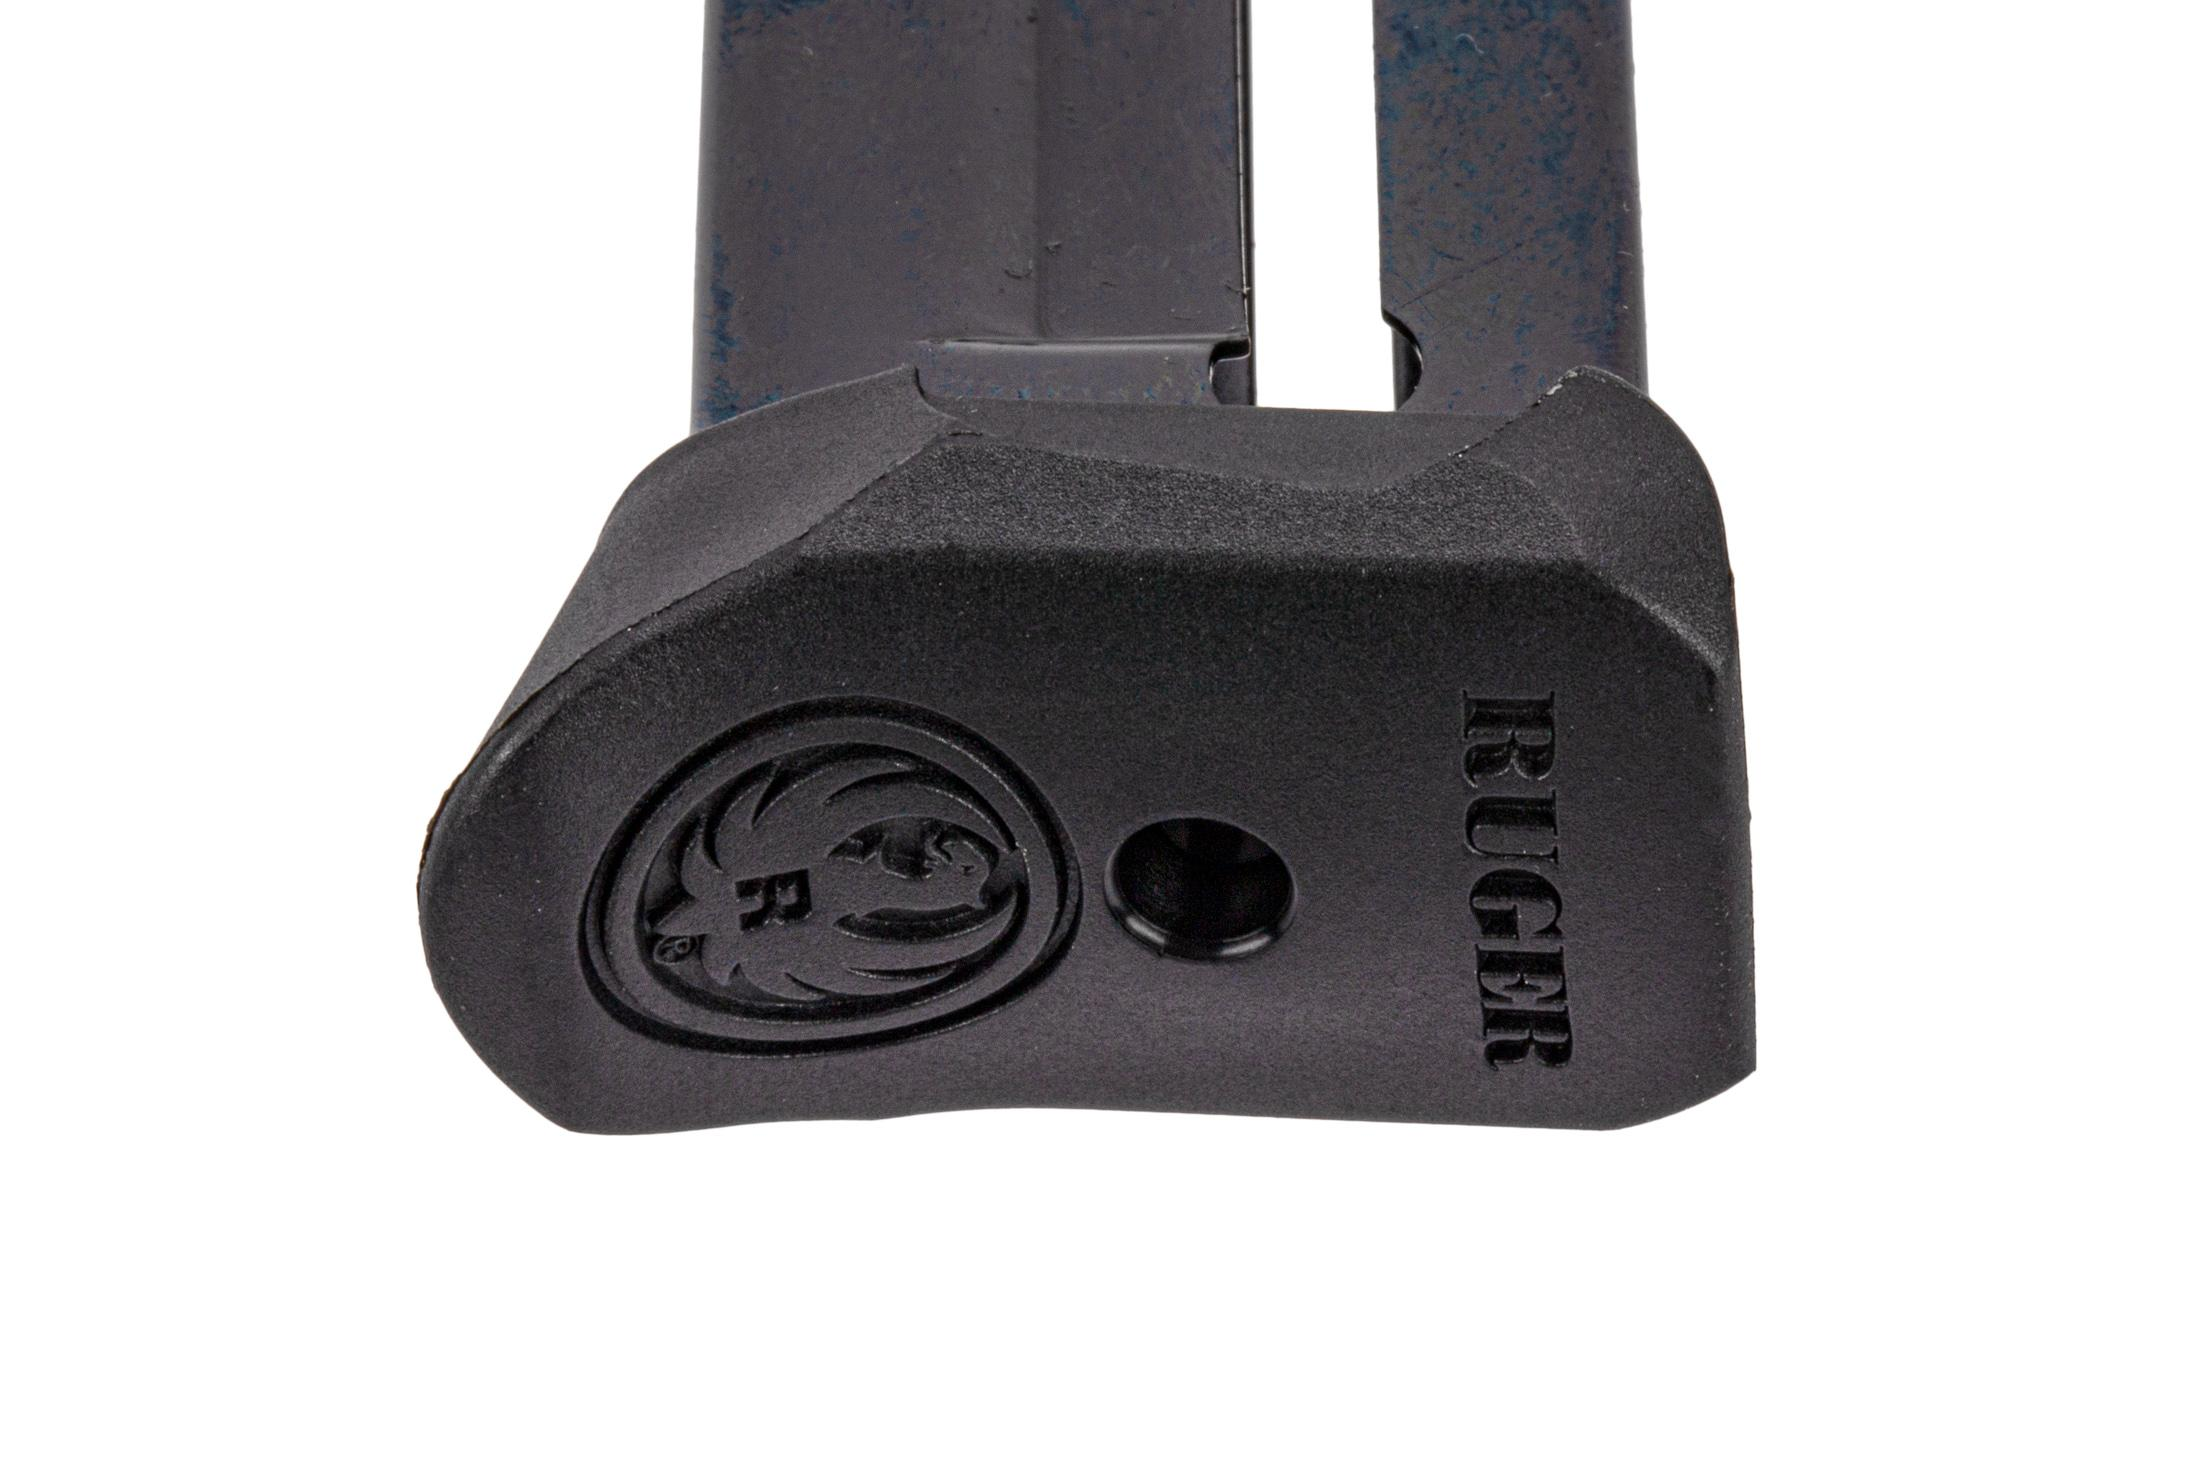 Ruger full cap 22-round .22 LR magazine for SR22 handguns with polymer base plate.